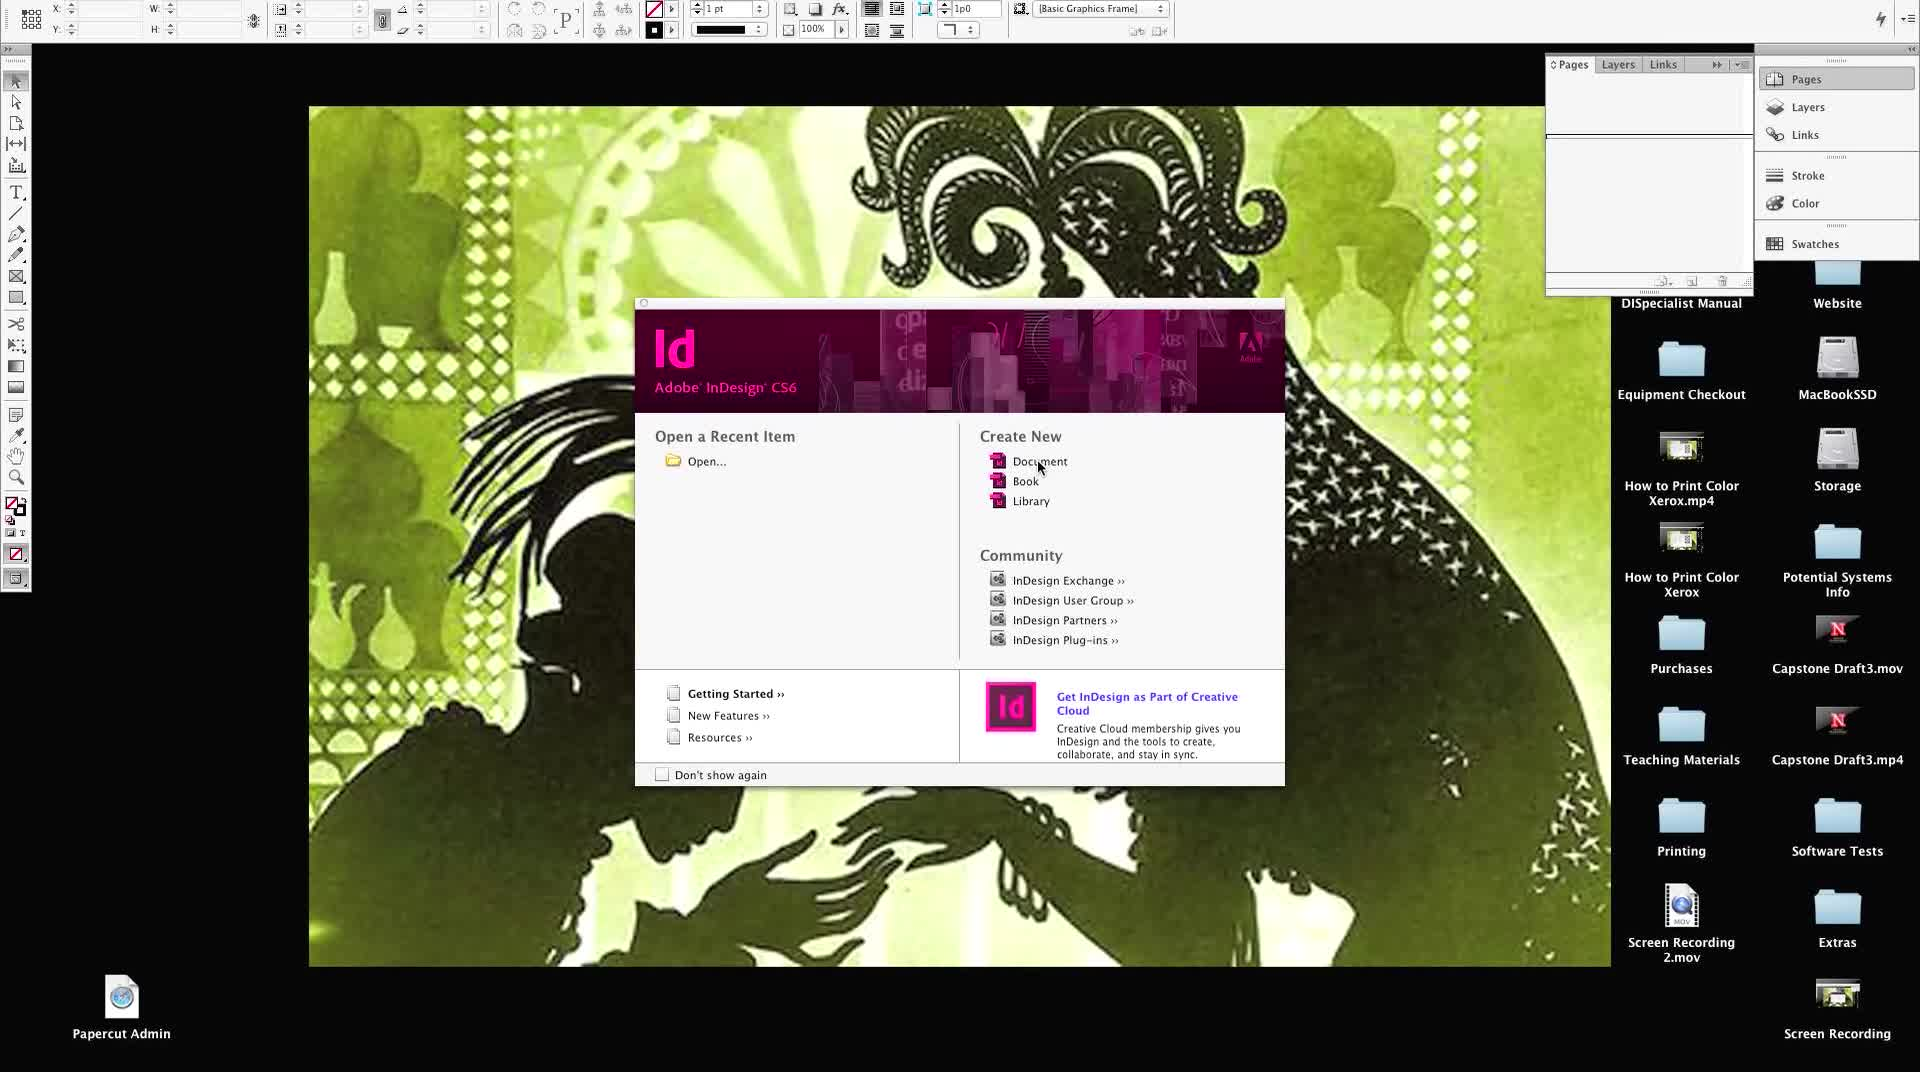 Printing a Booklet From InDesign